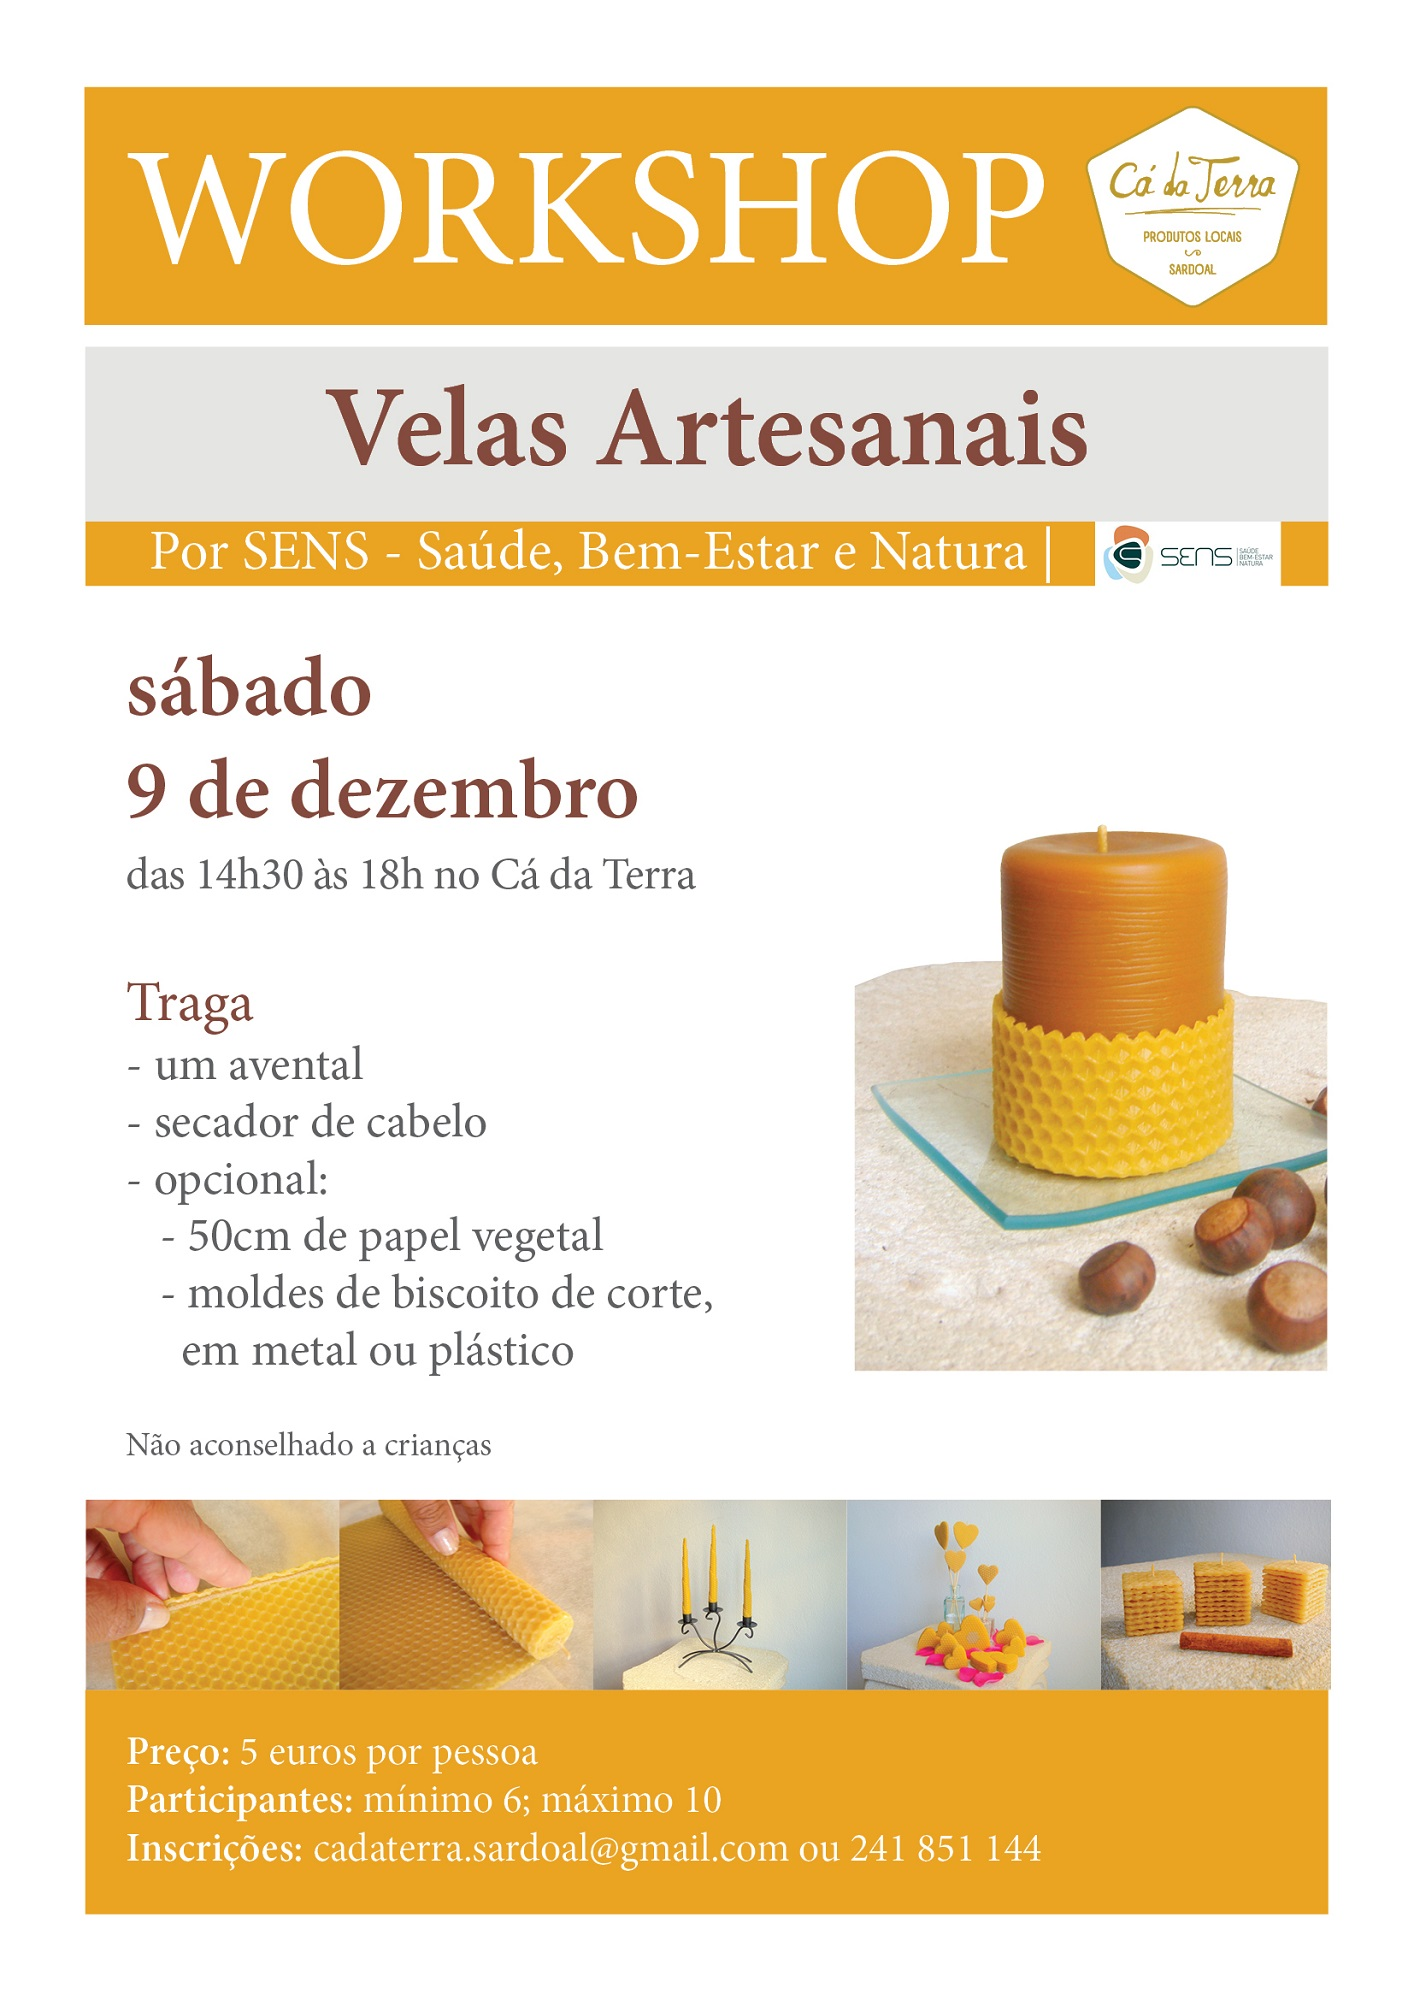 workshop velas artesanais 2017